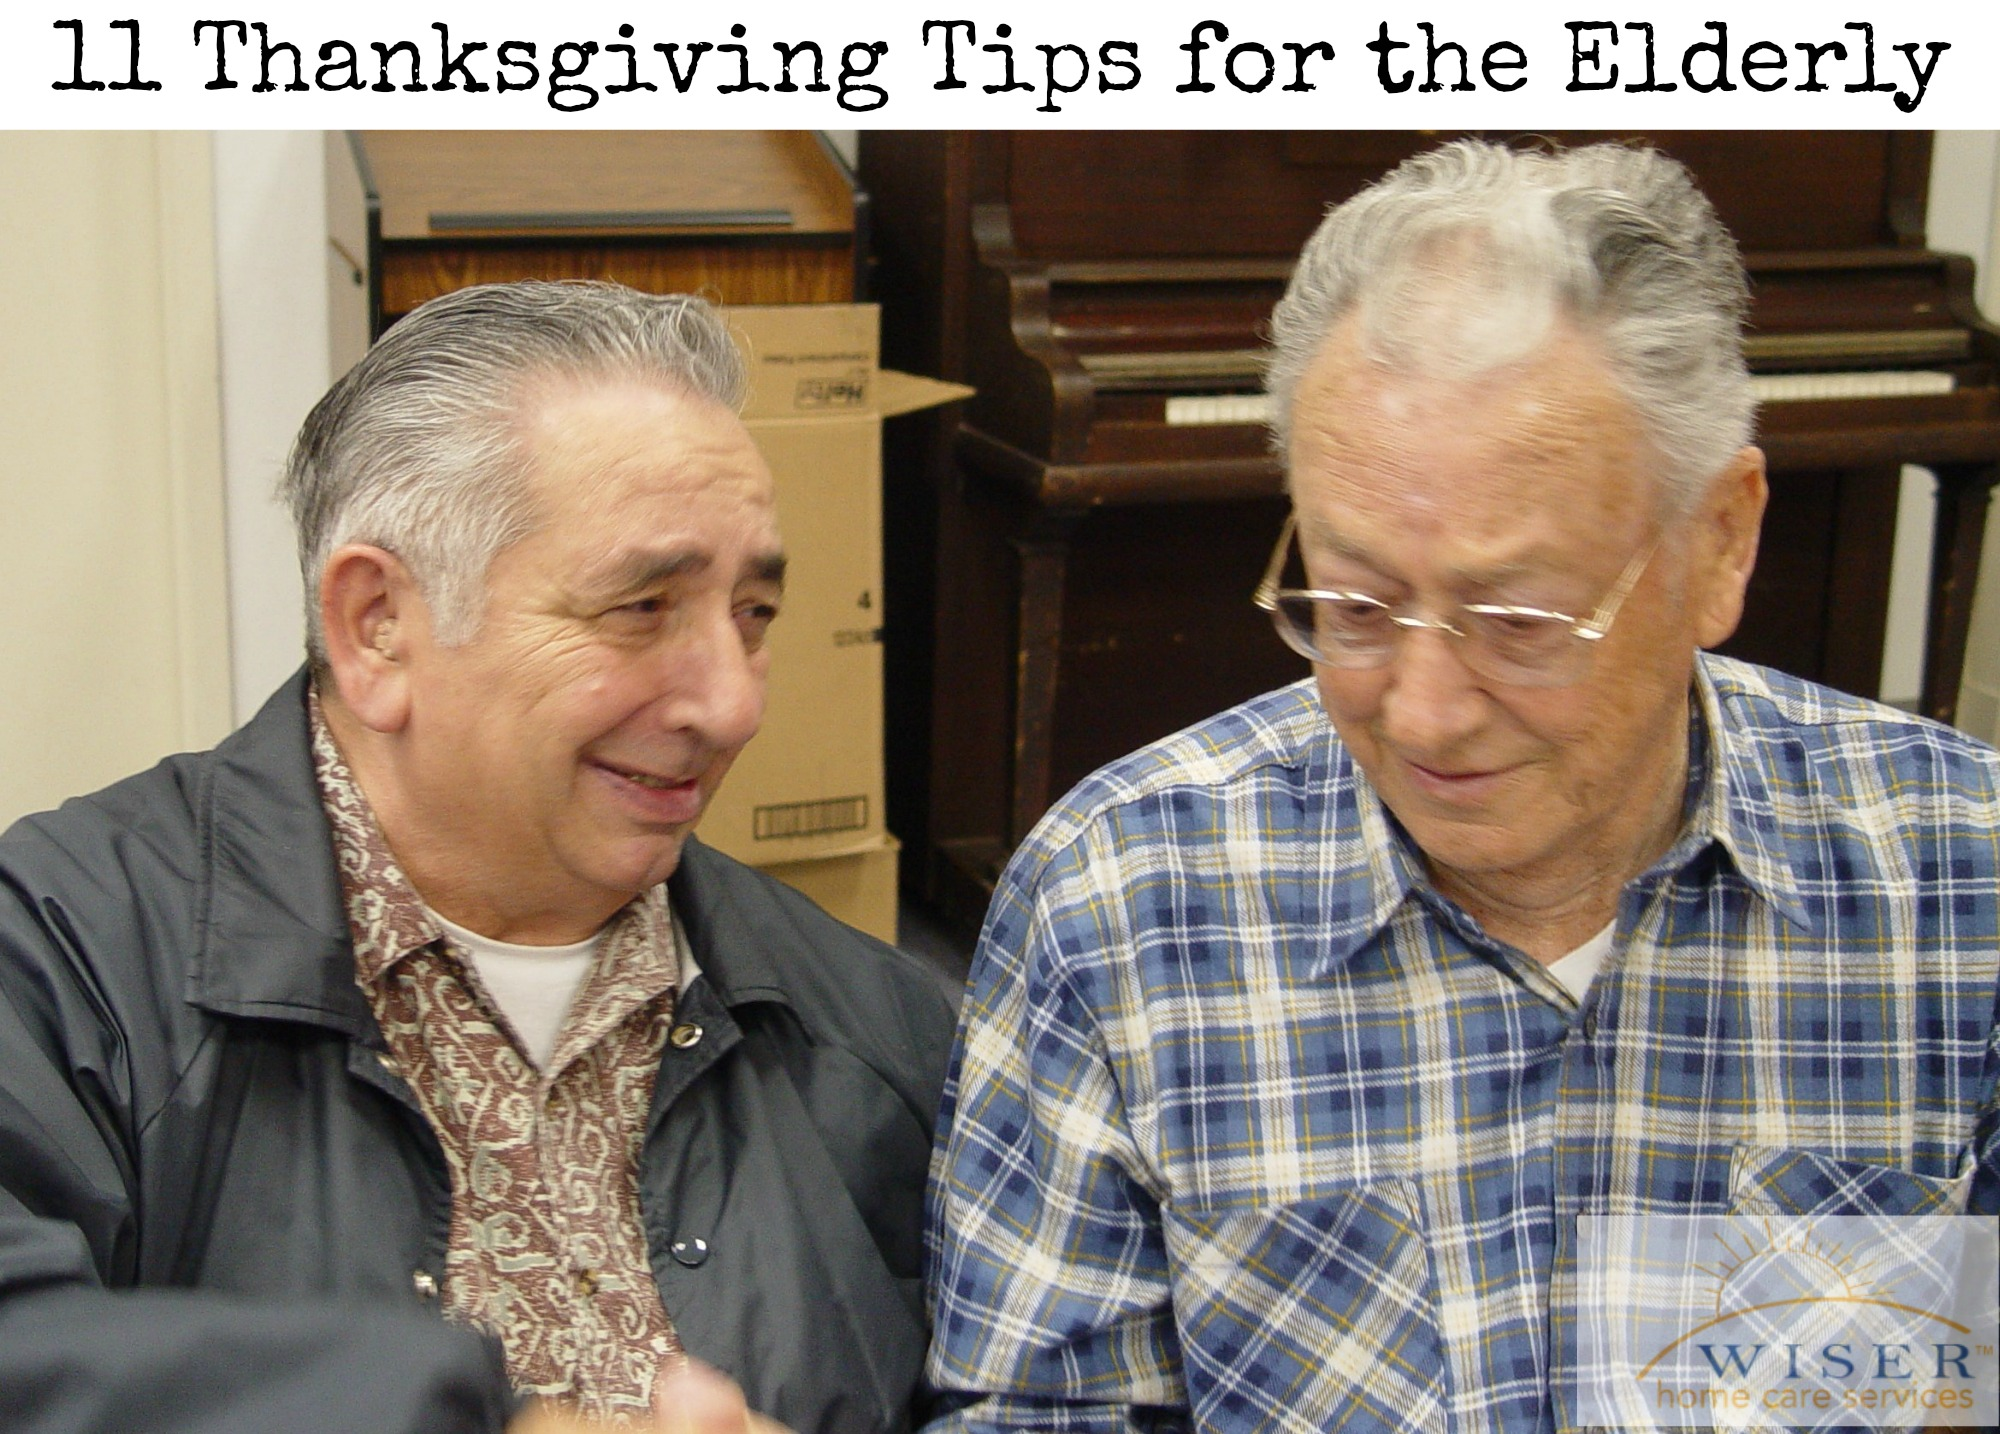 Thanksgiving is often a time spent with family. To ensure the safety of your elderly loved one Wiser Home Care has gathered these tips.